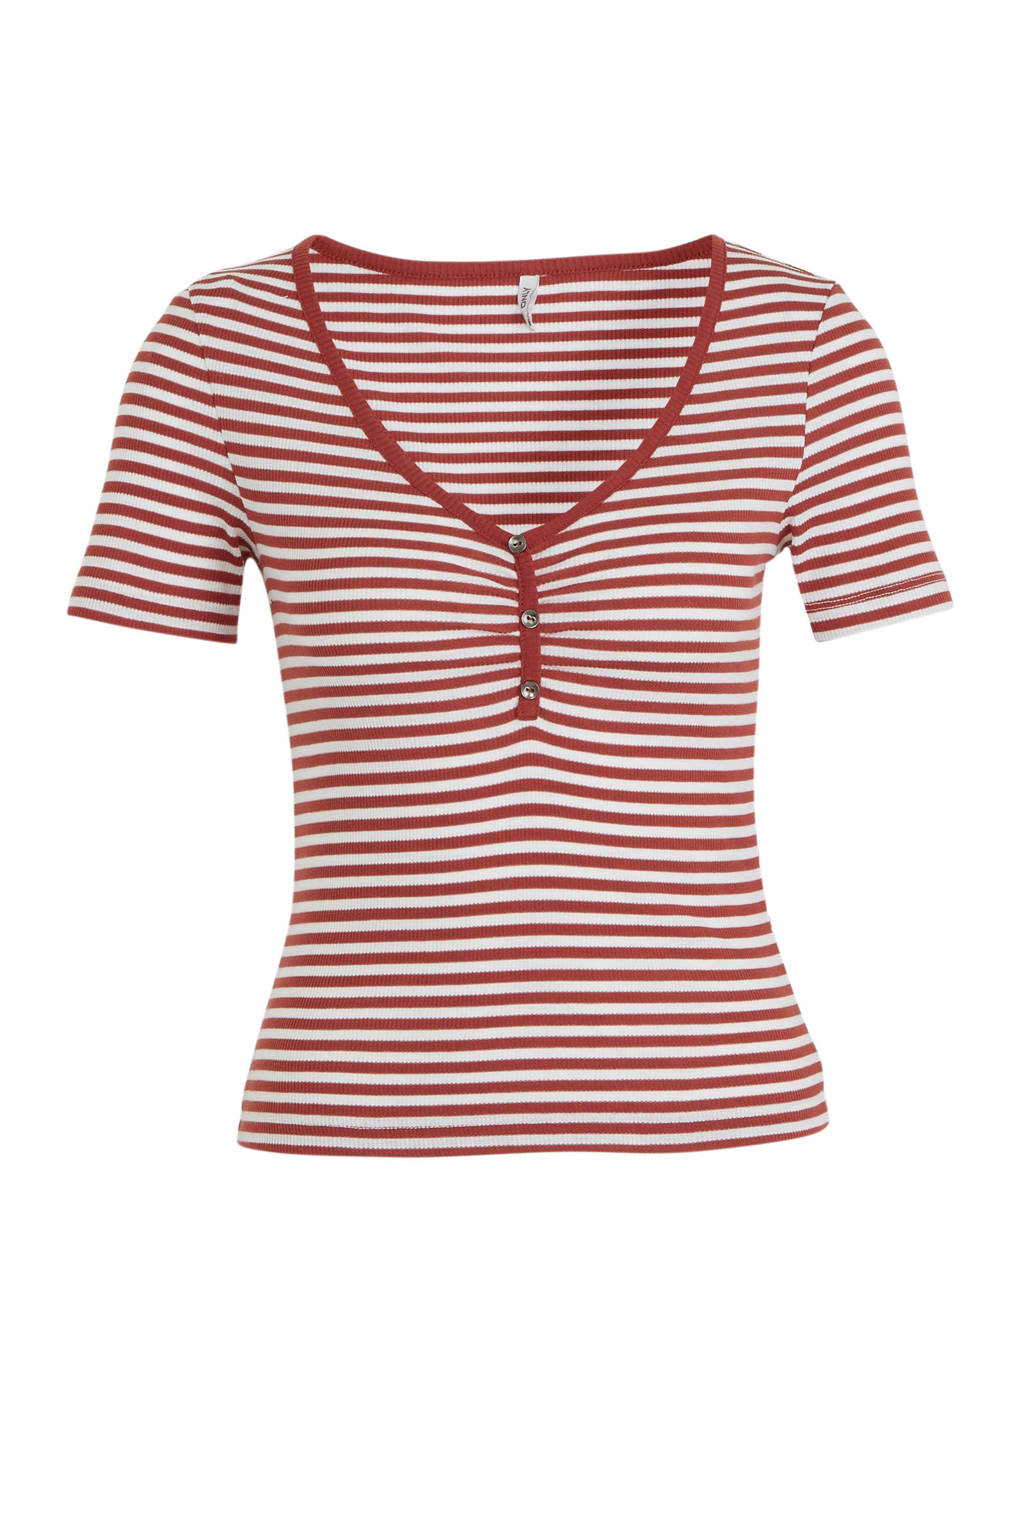 ONLY gestreepte top rood/wit, Rood/wit